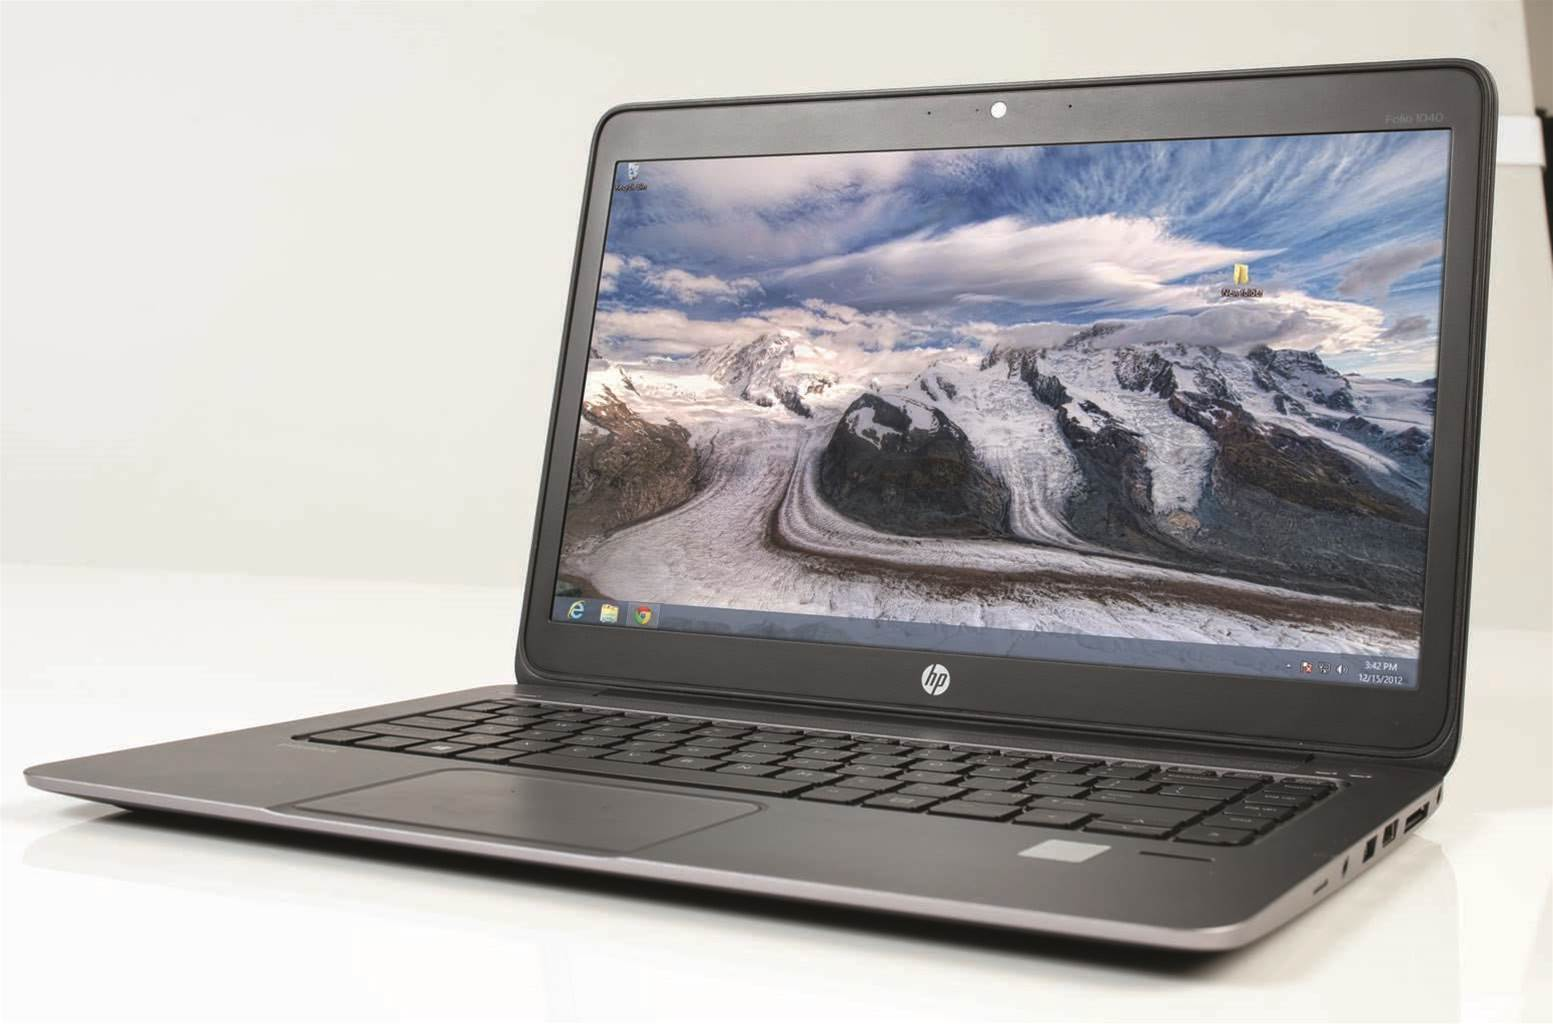 Labs Brief: HP Elitebook Folio 1040 G1